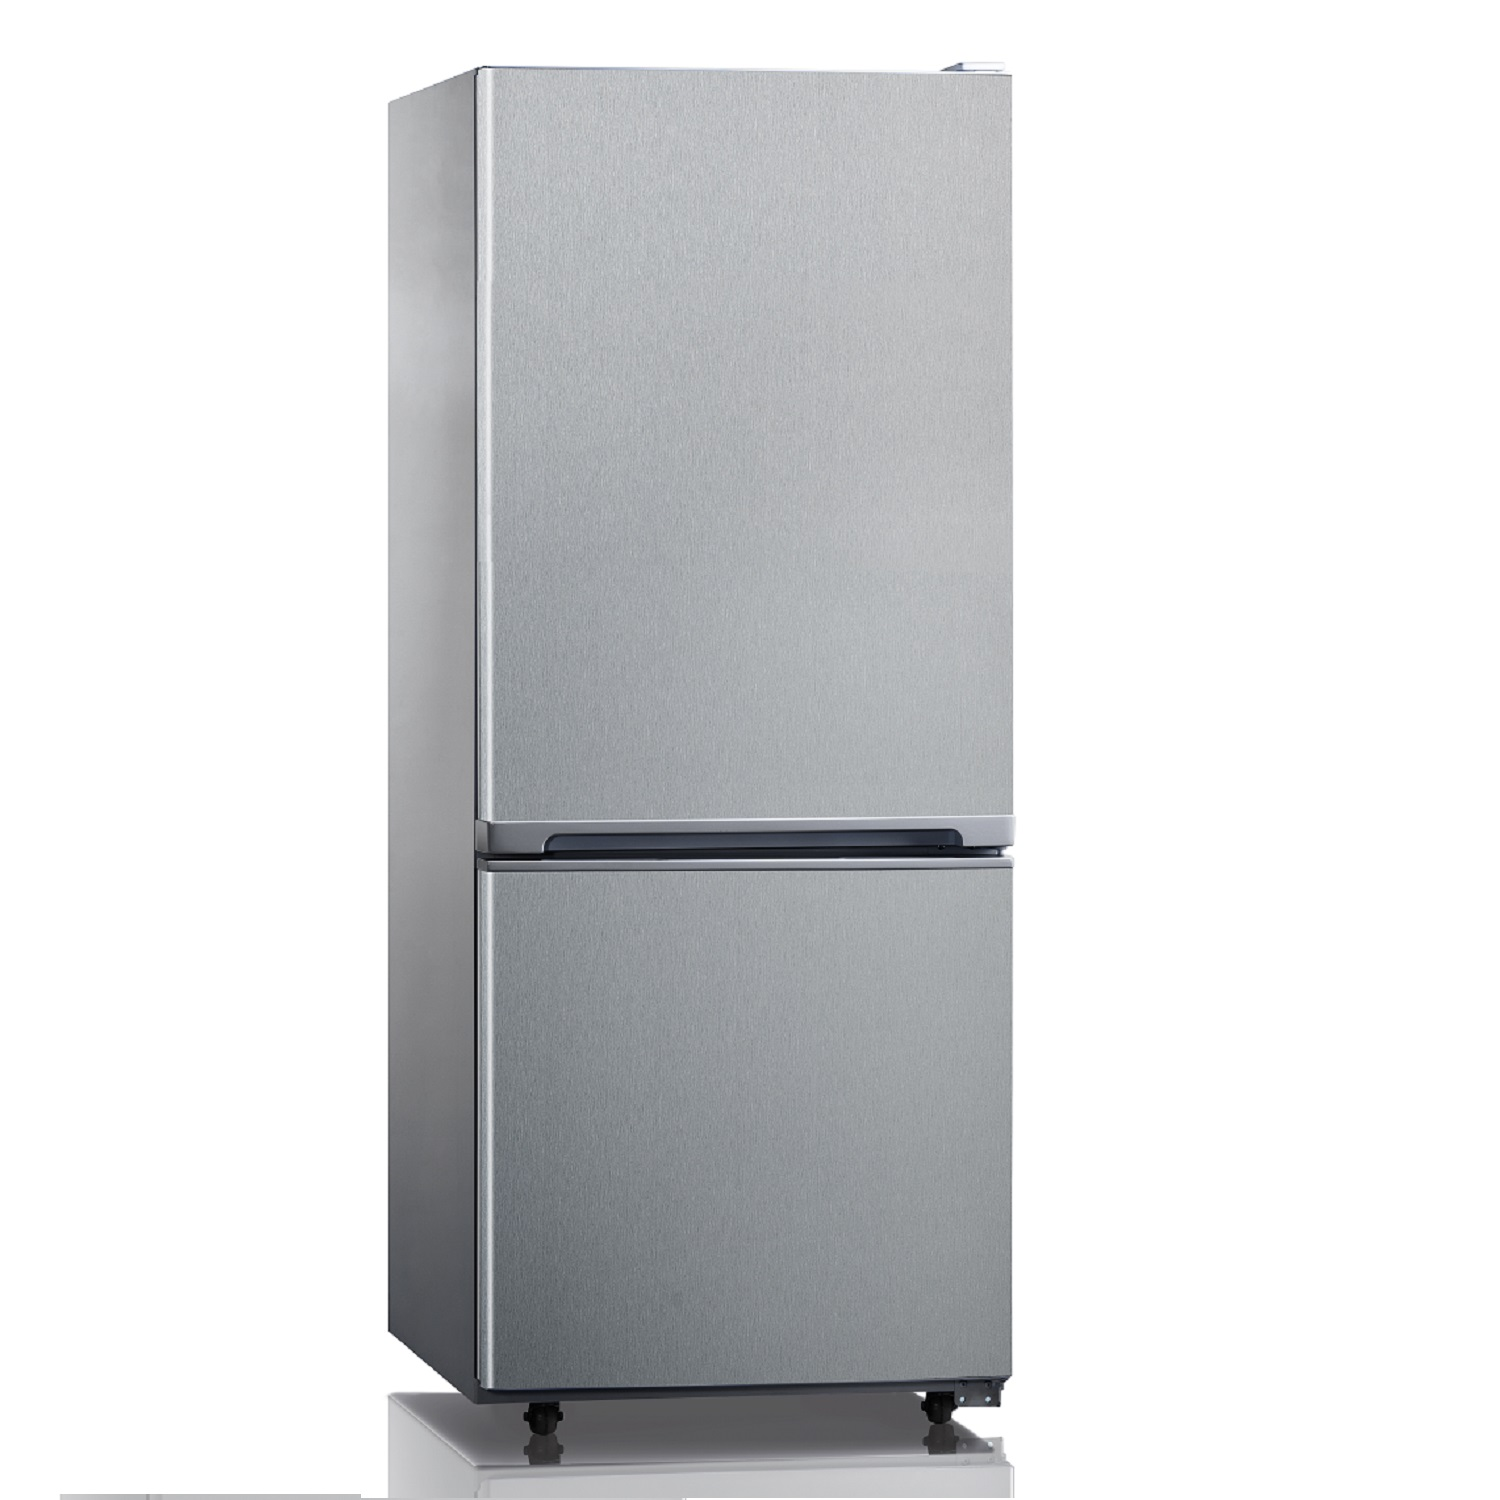 RF 368-100S - Bottom Mounted Refrigerator White - Capacity 10 cu.ft